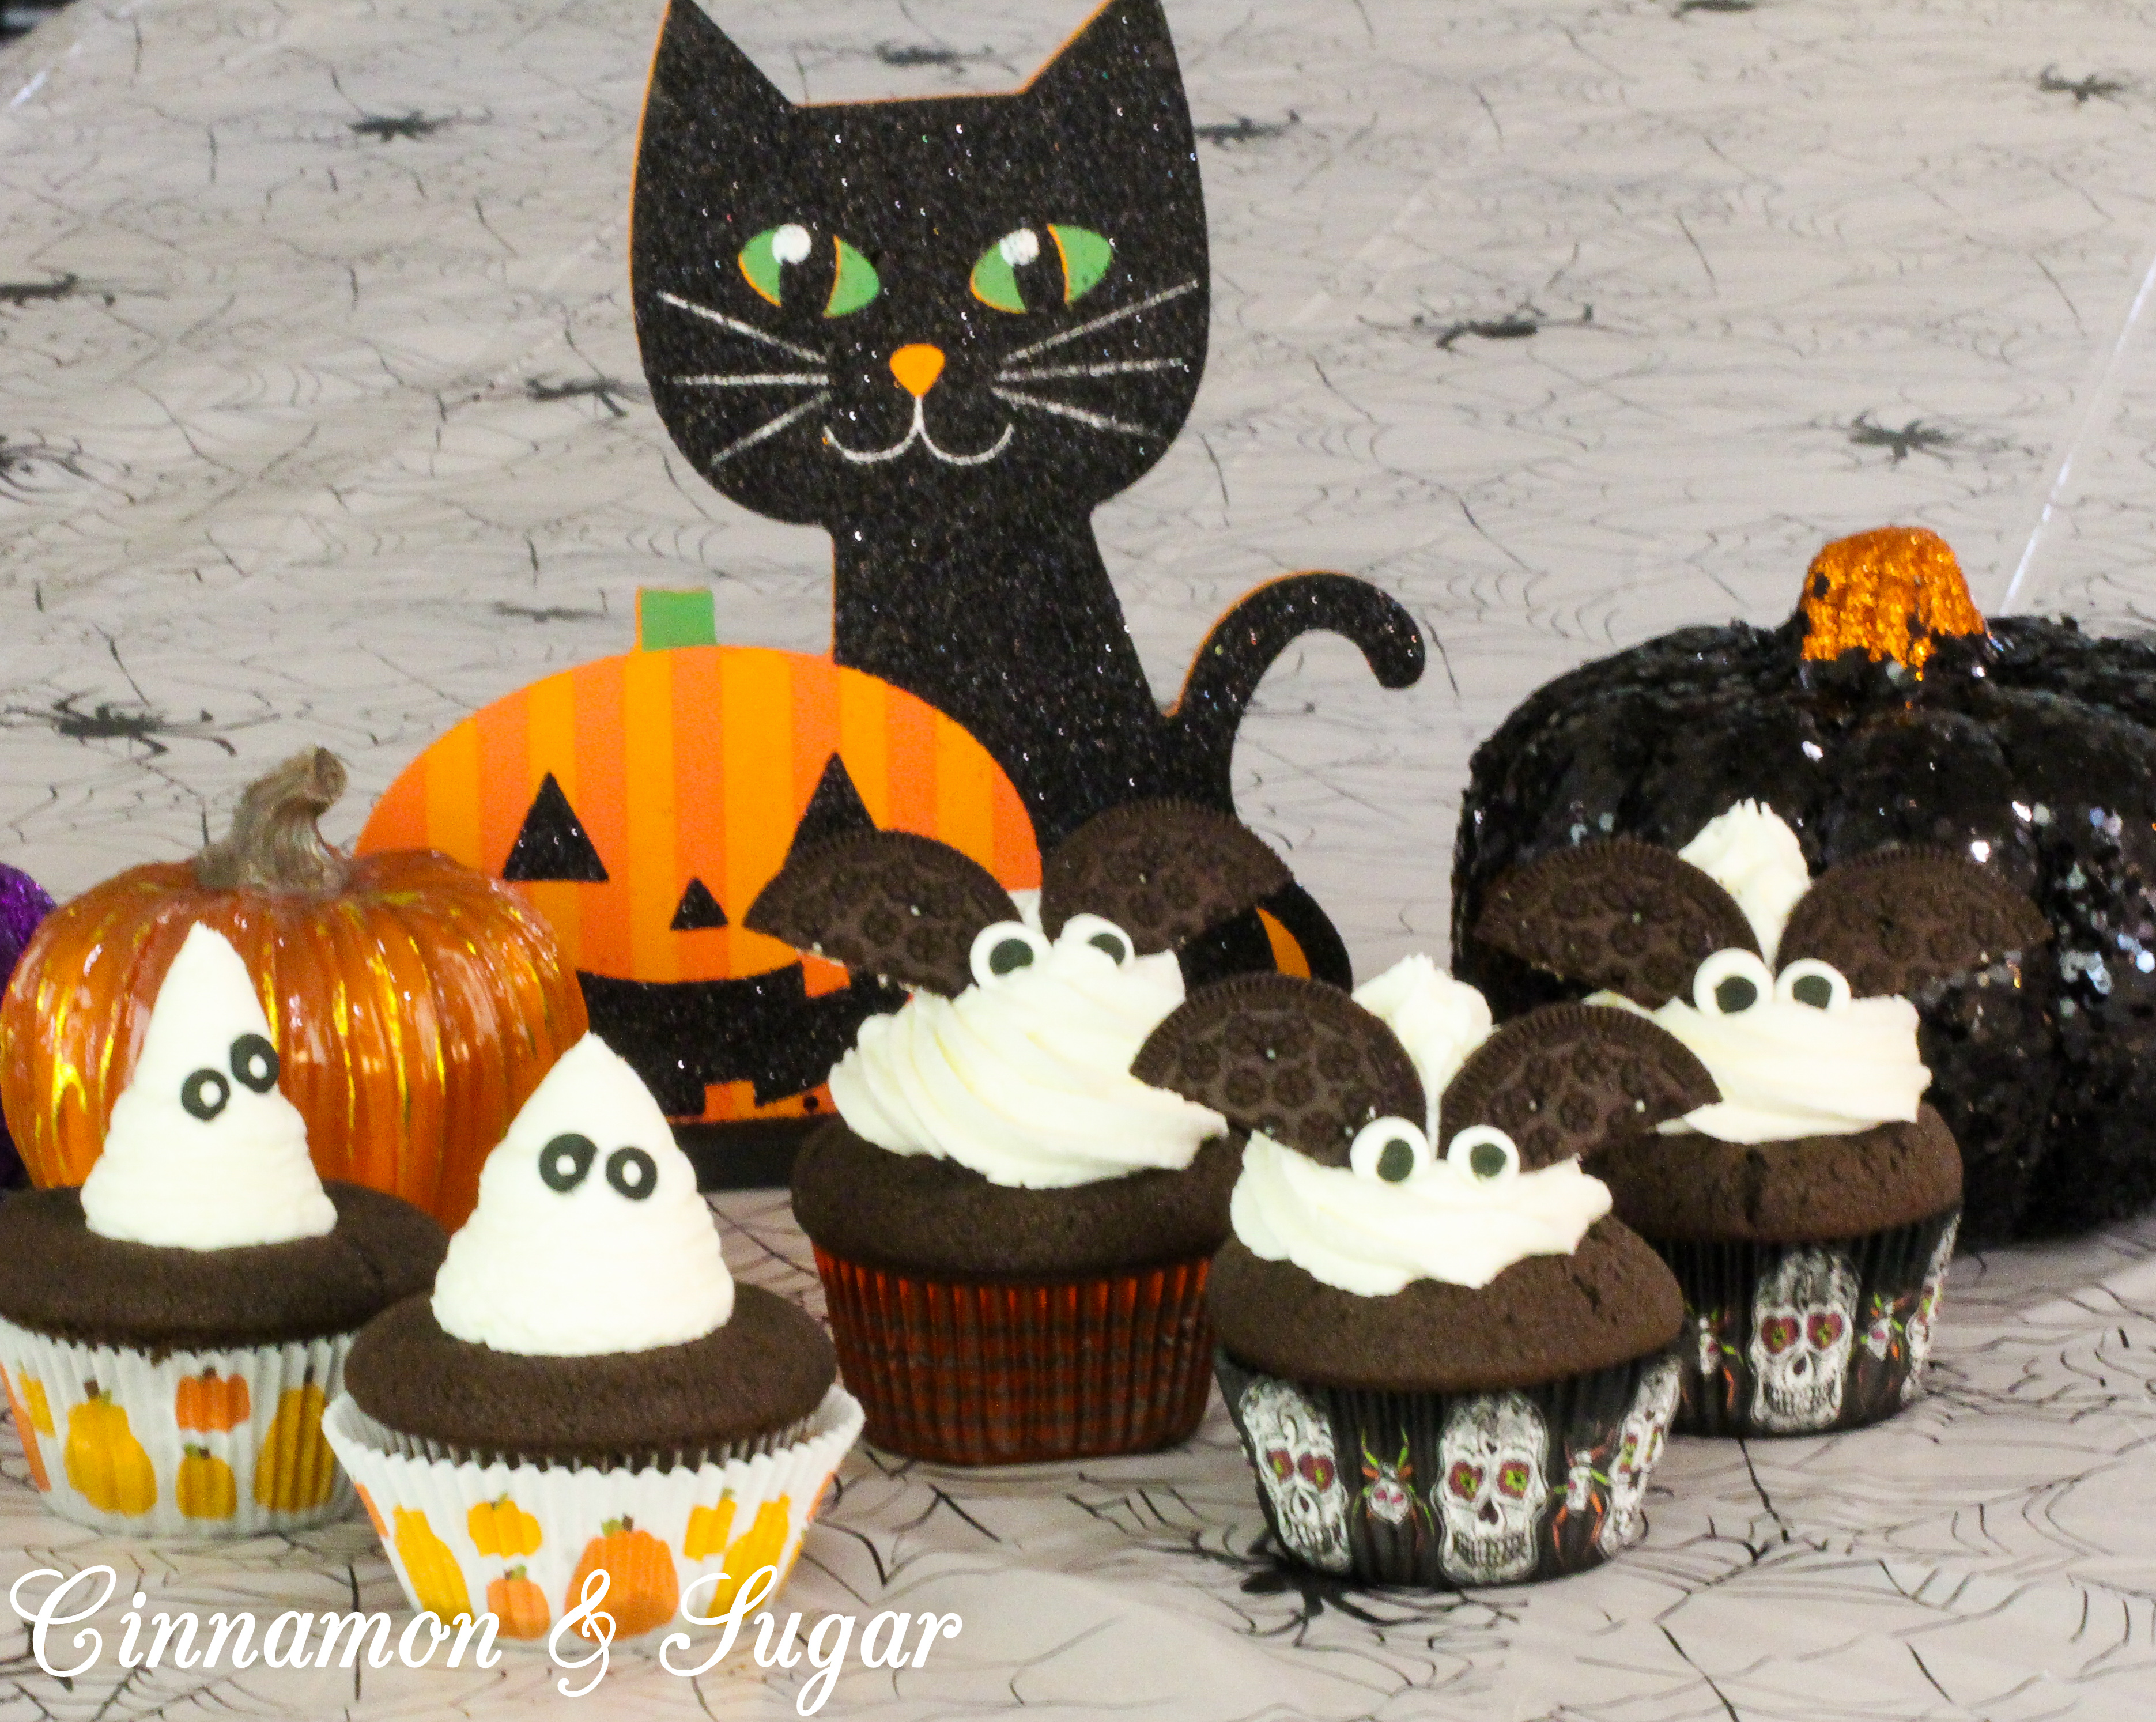 Spooky Surprise (Cookie Dough) Cupcakes!